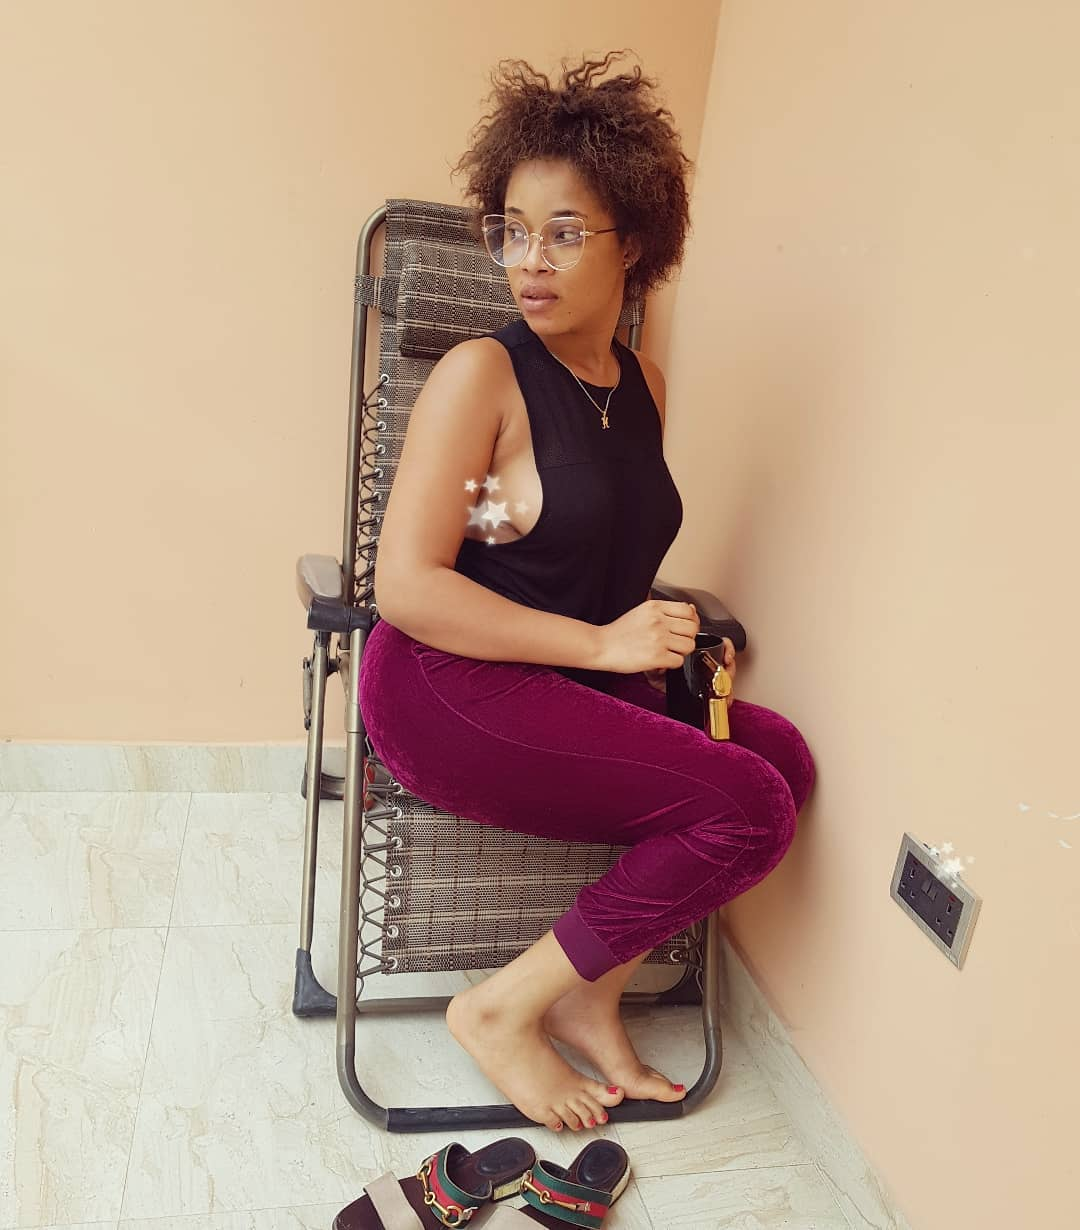 Onyii Alex Flashes Sideboob On Her Natural Hair Day